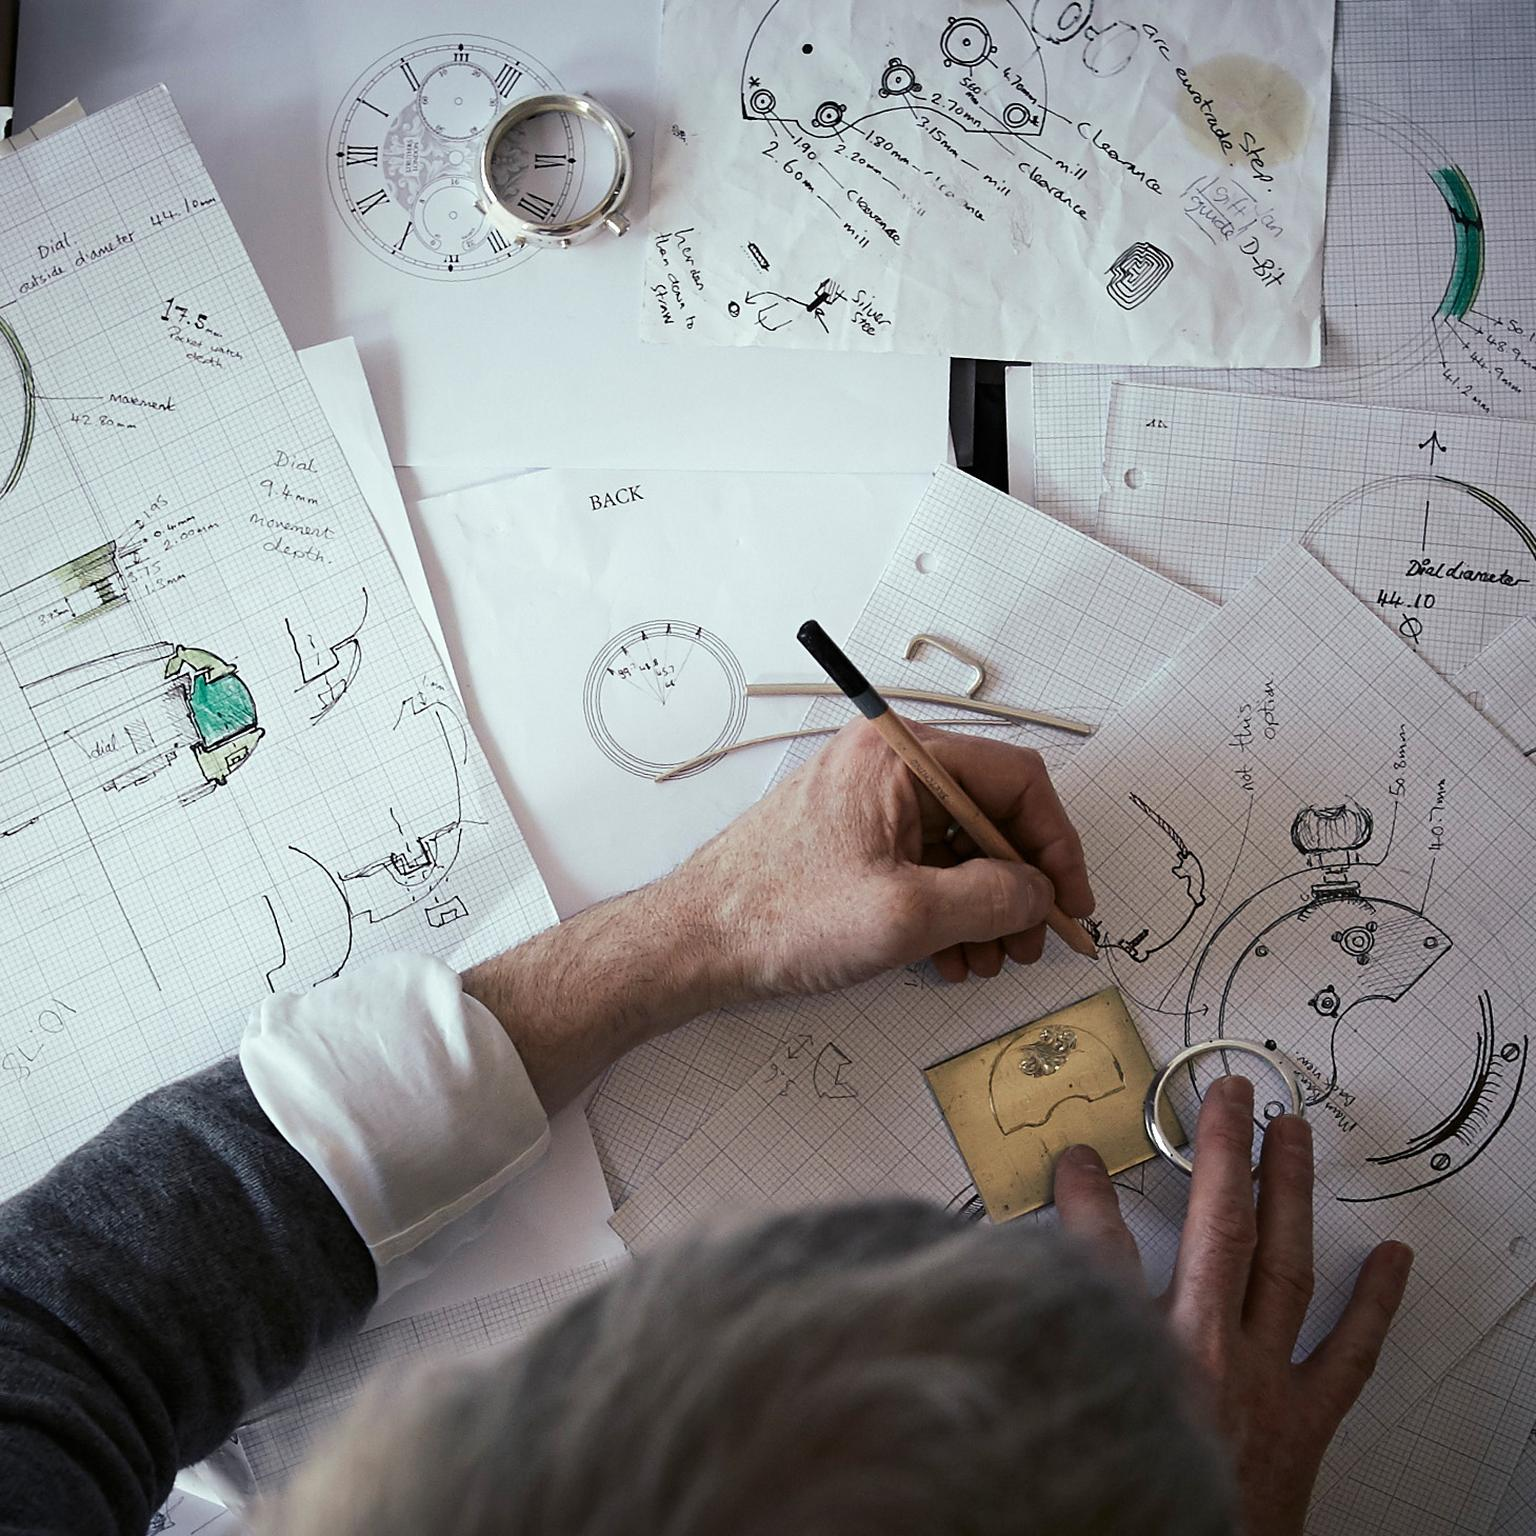 Craig Struthers designing a bespoke watch